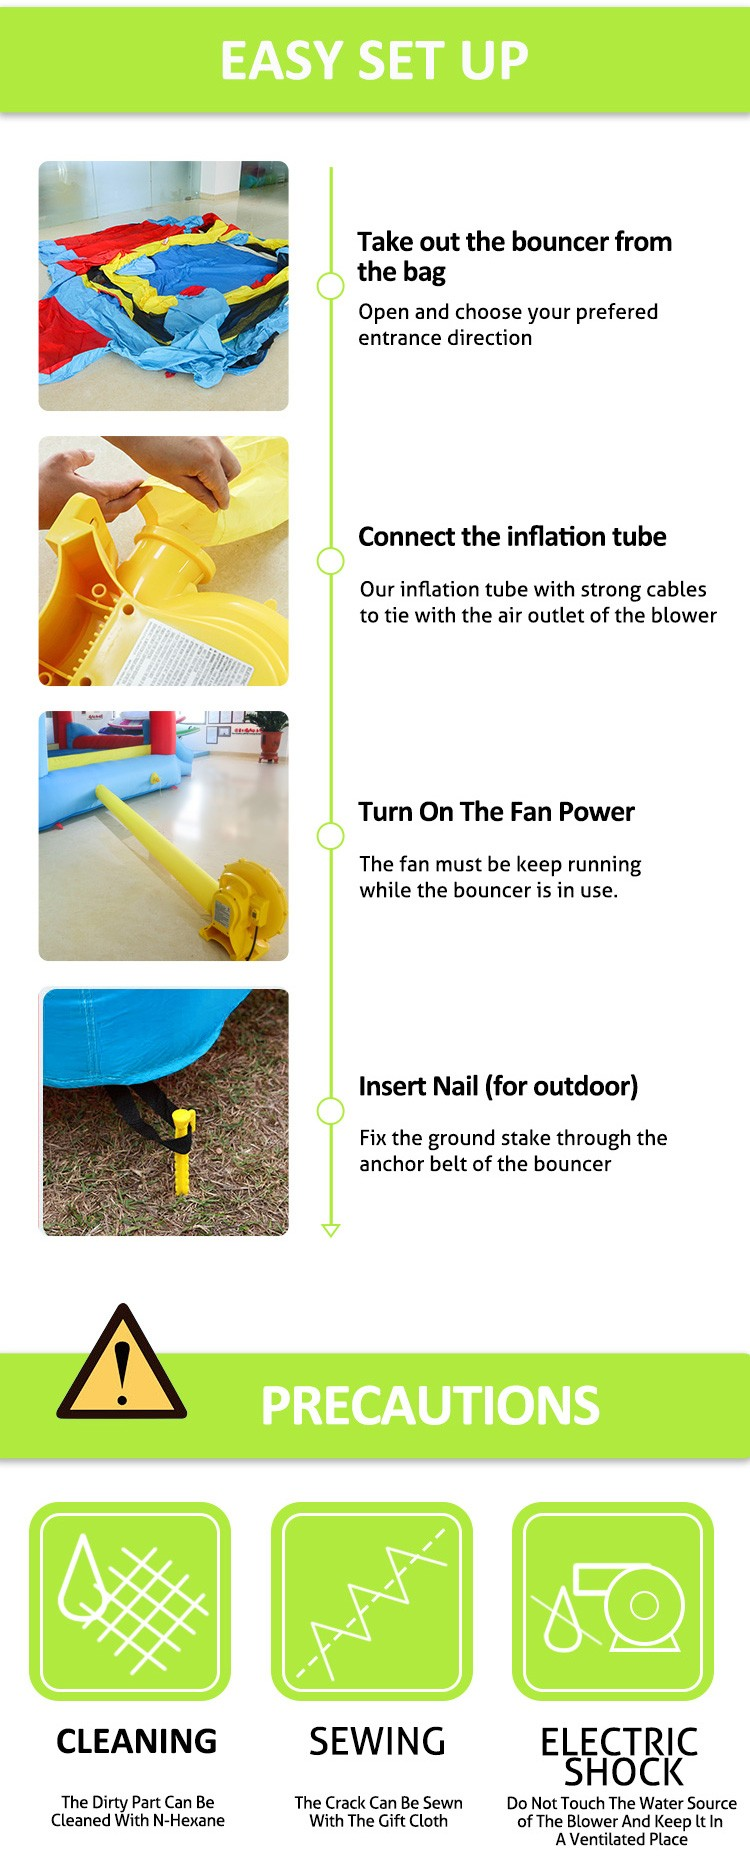 iSup, Air Track, Inflatable Bouncers, Inflatable Slide, Inflatable Obstacle, Inflatable Mat